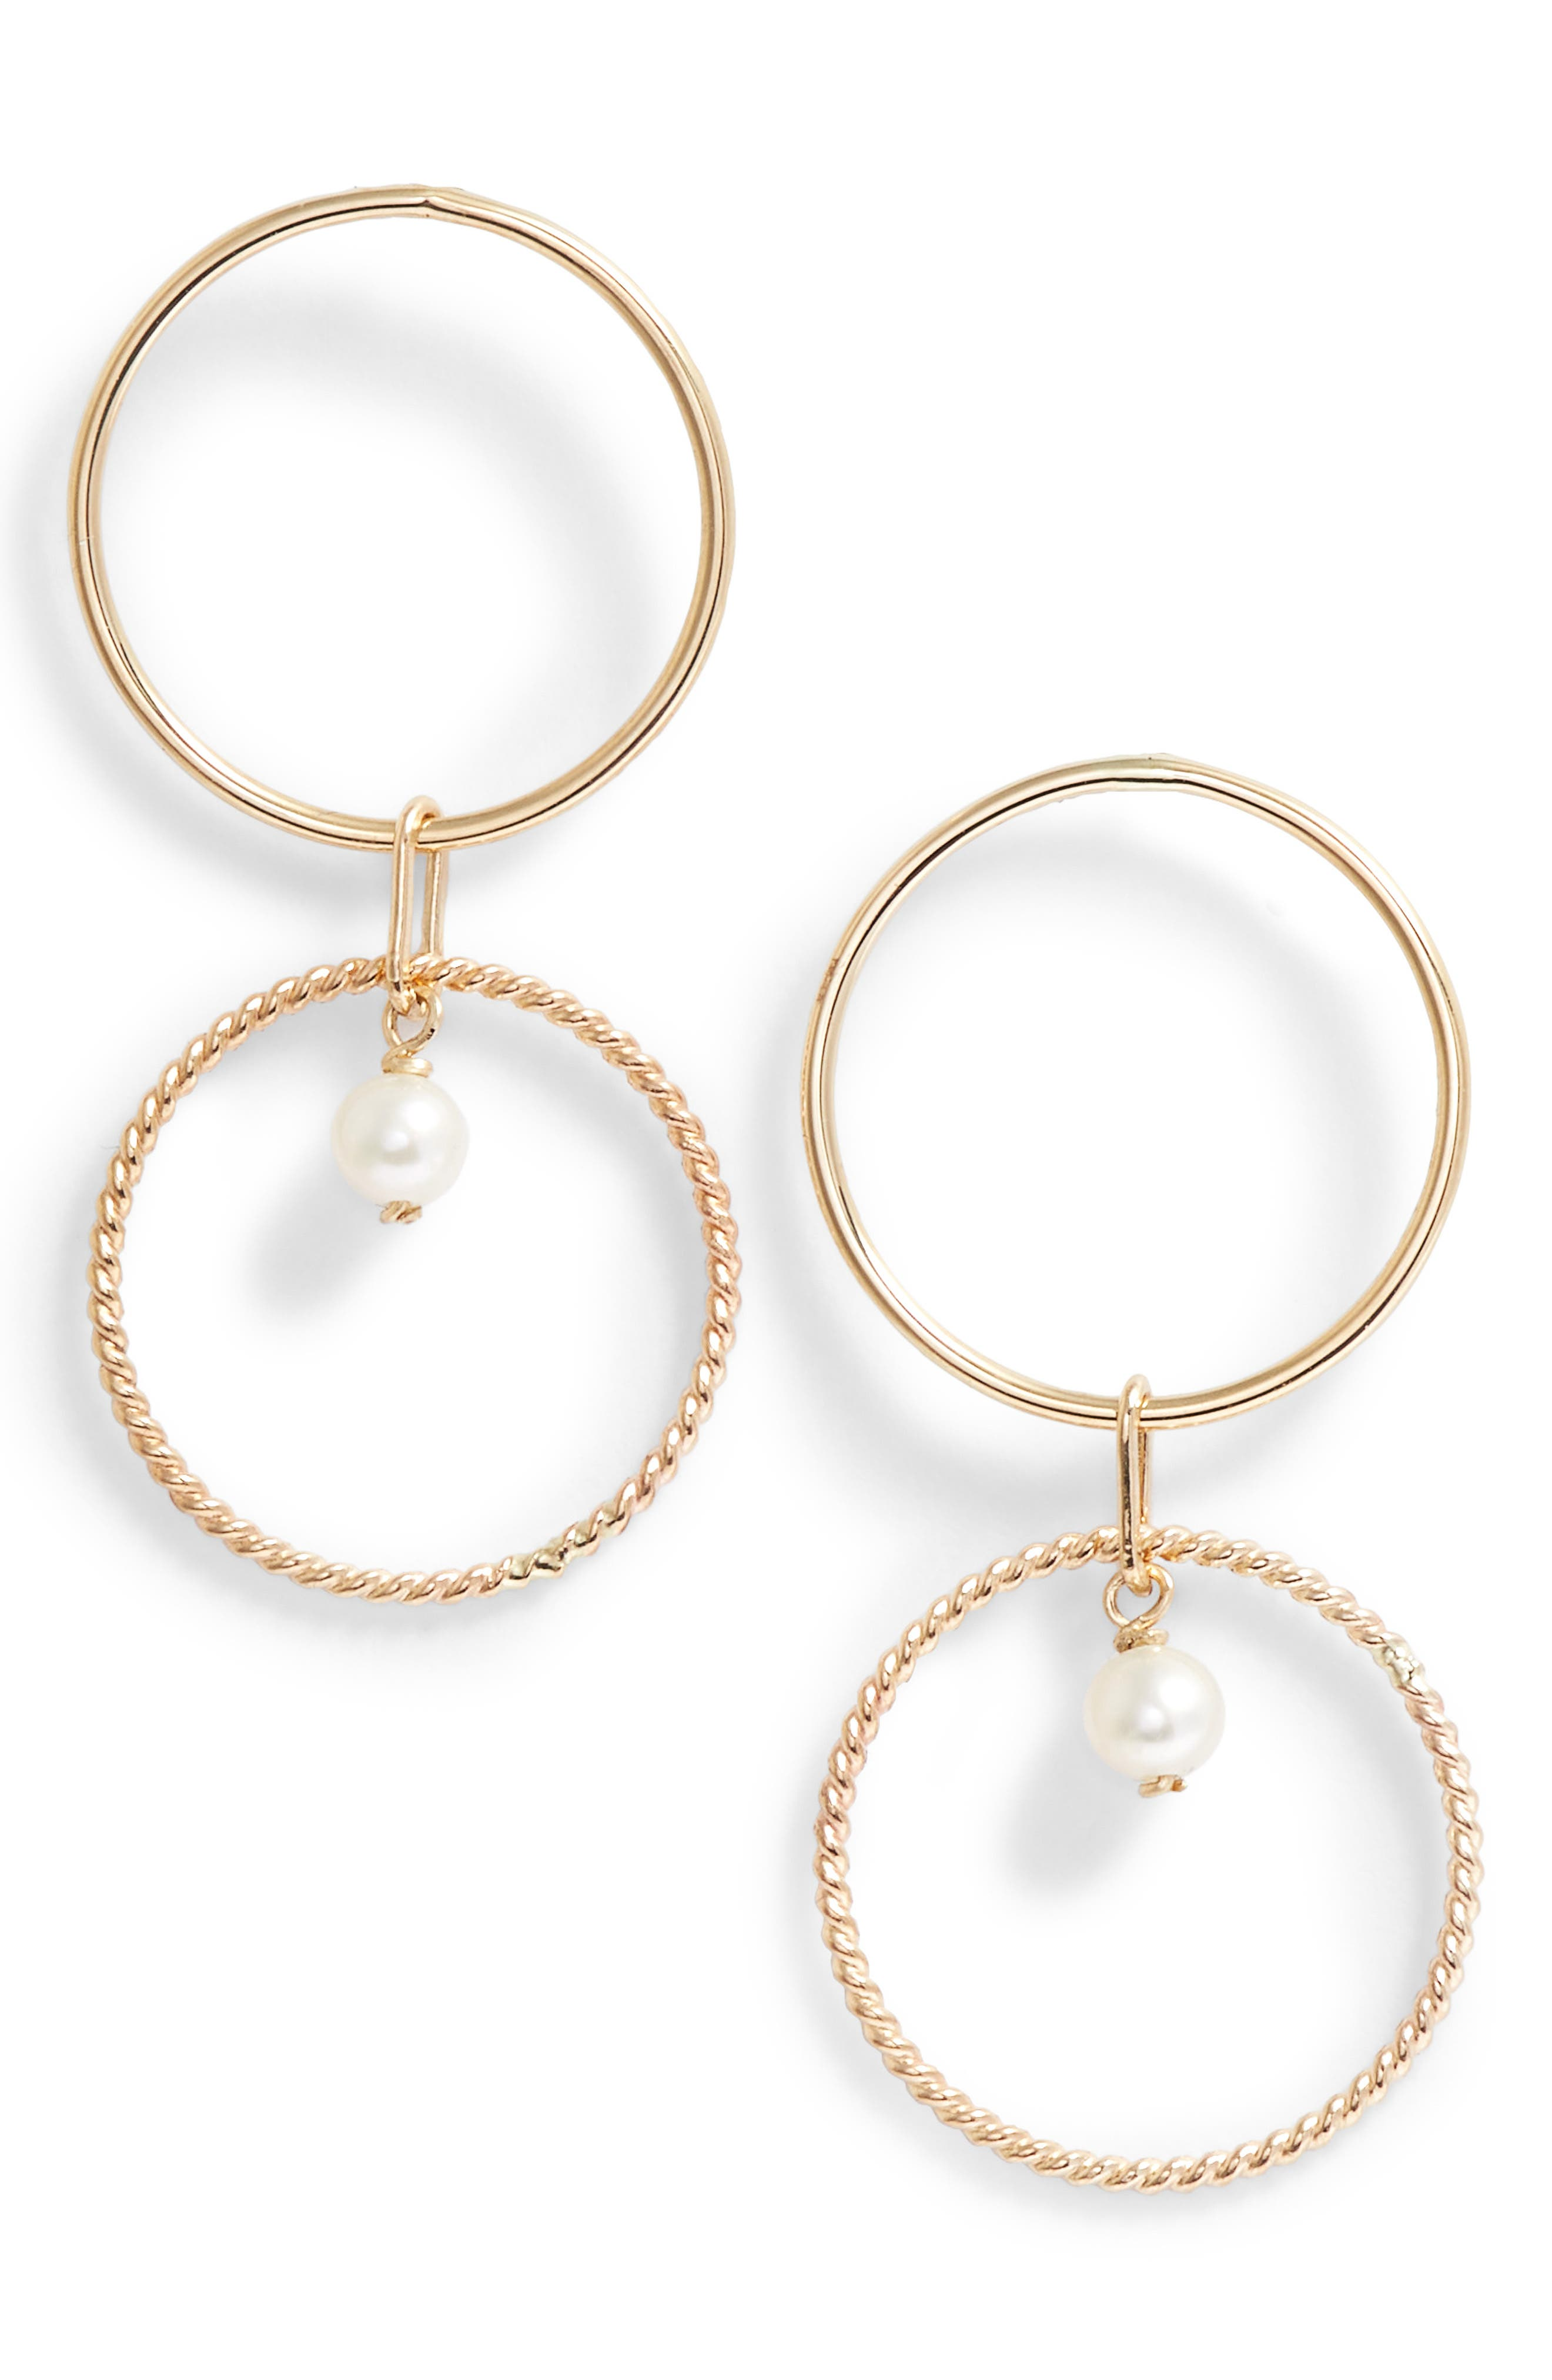 Pearl Double Hoop Earrings,                             Main thumbnail 1, color,                             YELLOW GOLD/ WHITE PEARL